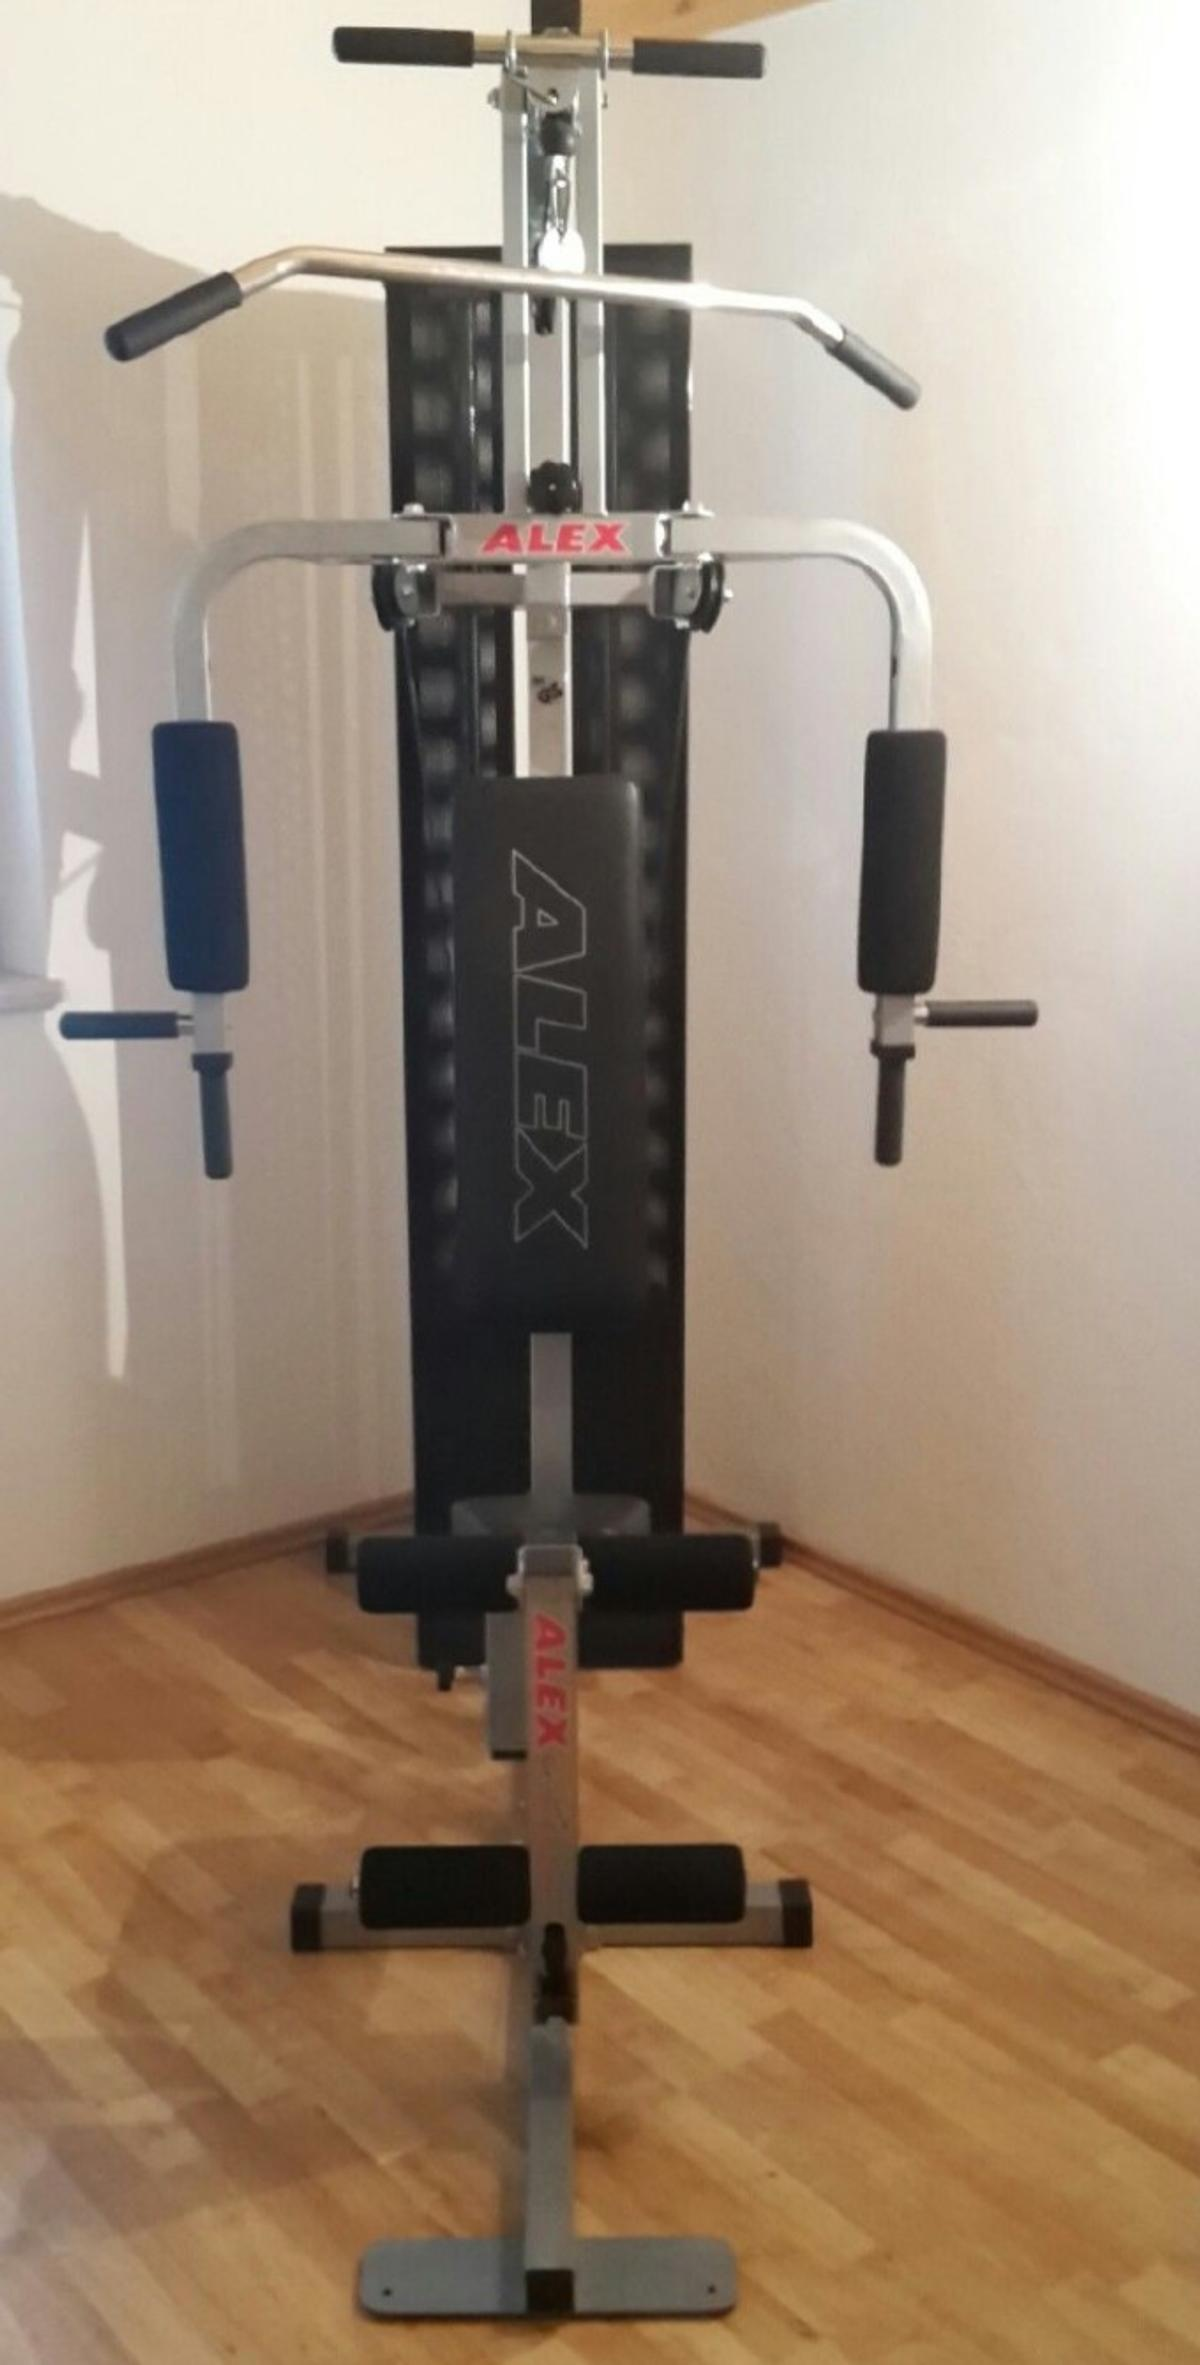 Alex Turm Fitness Turm Alex Super Gym In 6264 For 100 00 For Sale Shpock